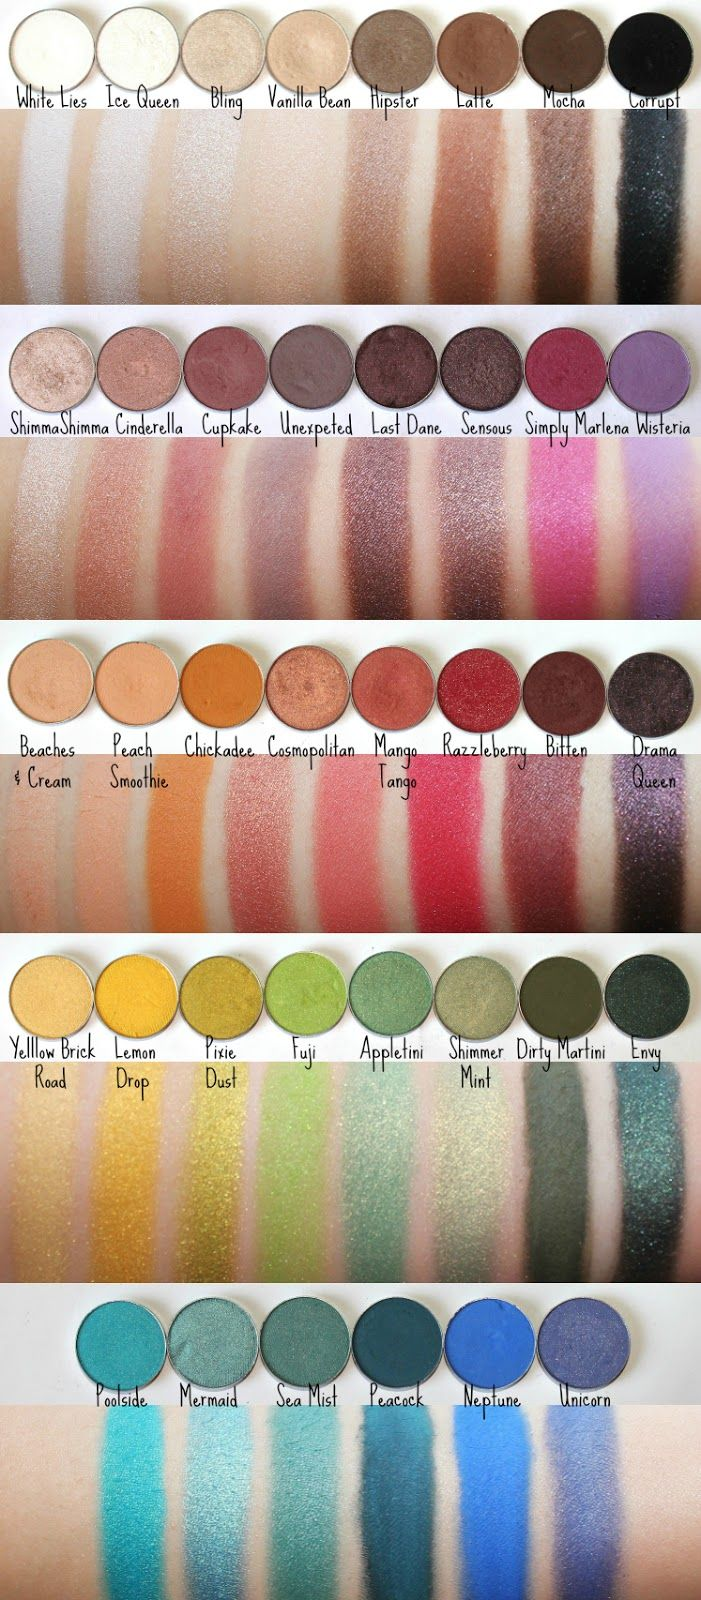 Wiktoria Gajewska Cienie Prasowane Makeup Geek 38 Odcieni Makeup Geek Eyeshadow Makeup Geek Eyeshadow Swatches Makeup Geek